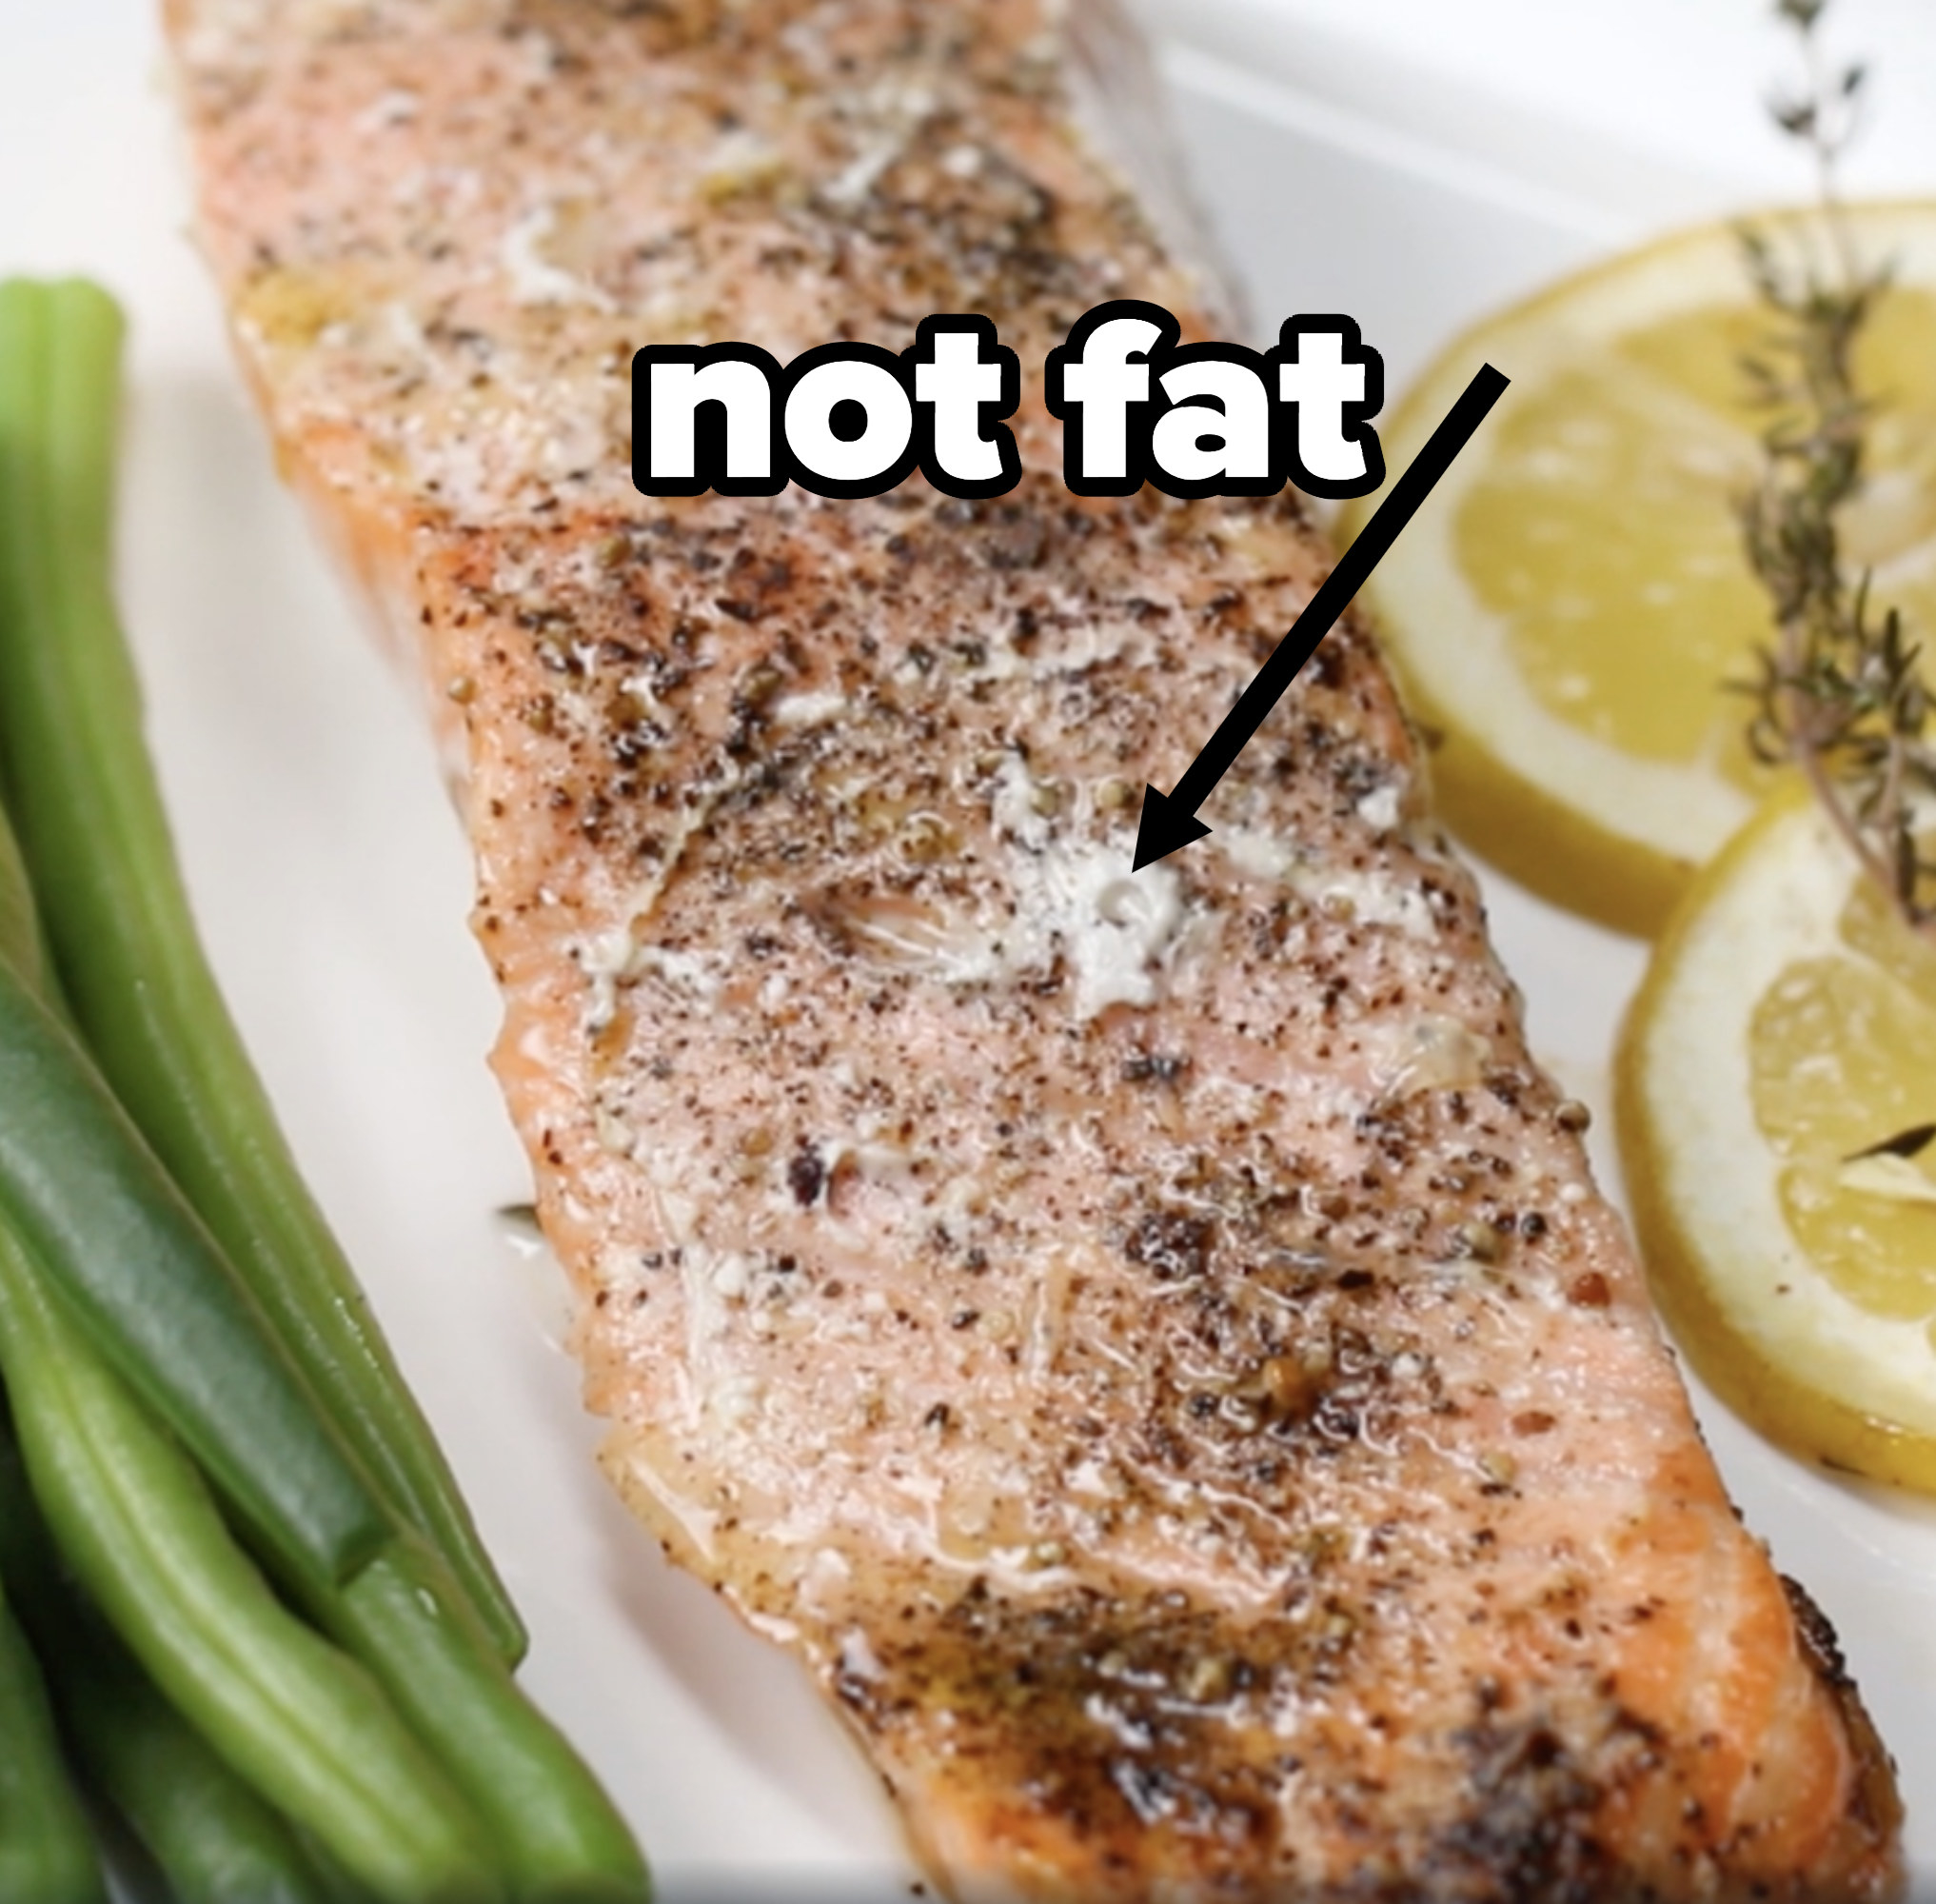 A cooked salmon filet with white gunk visible on top